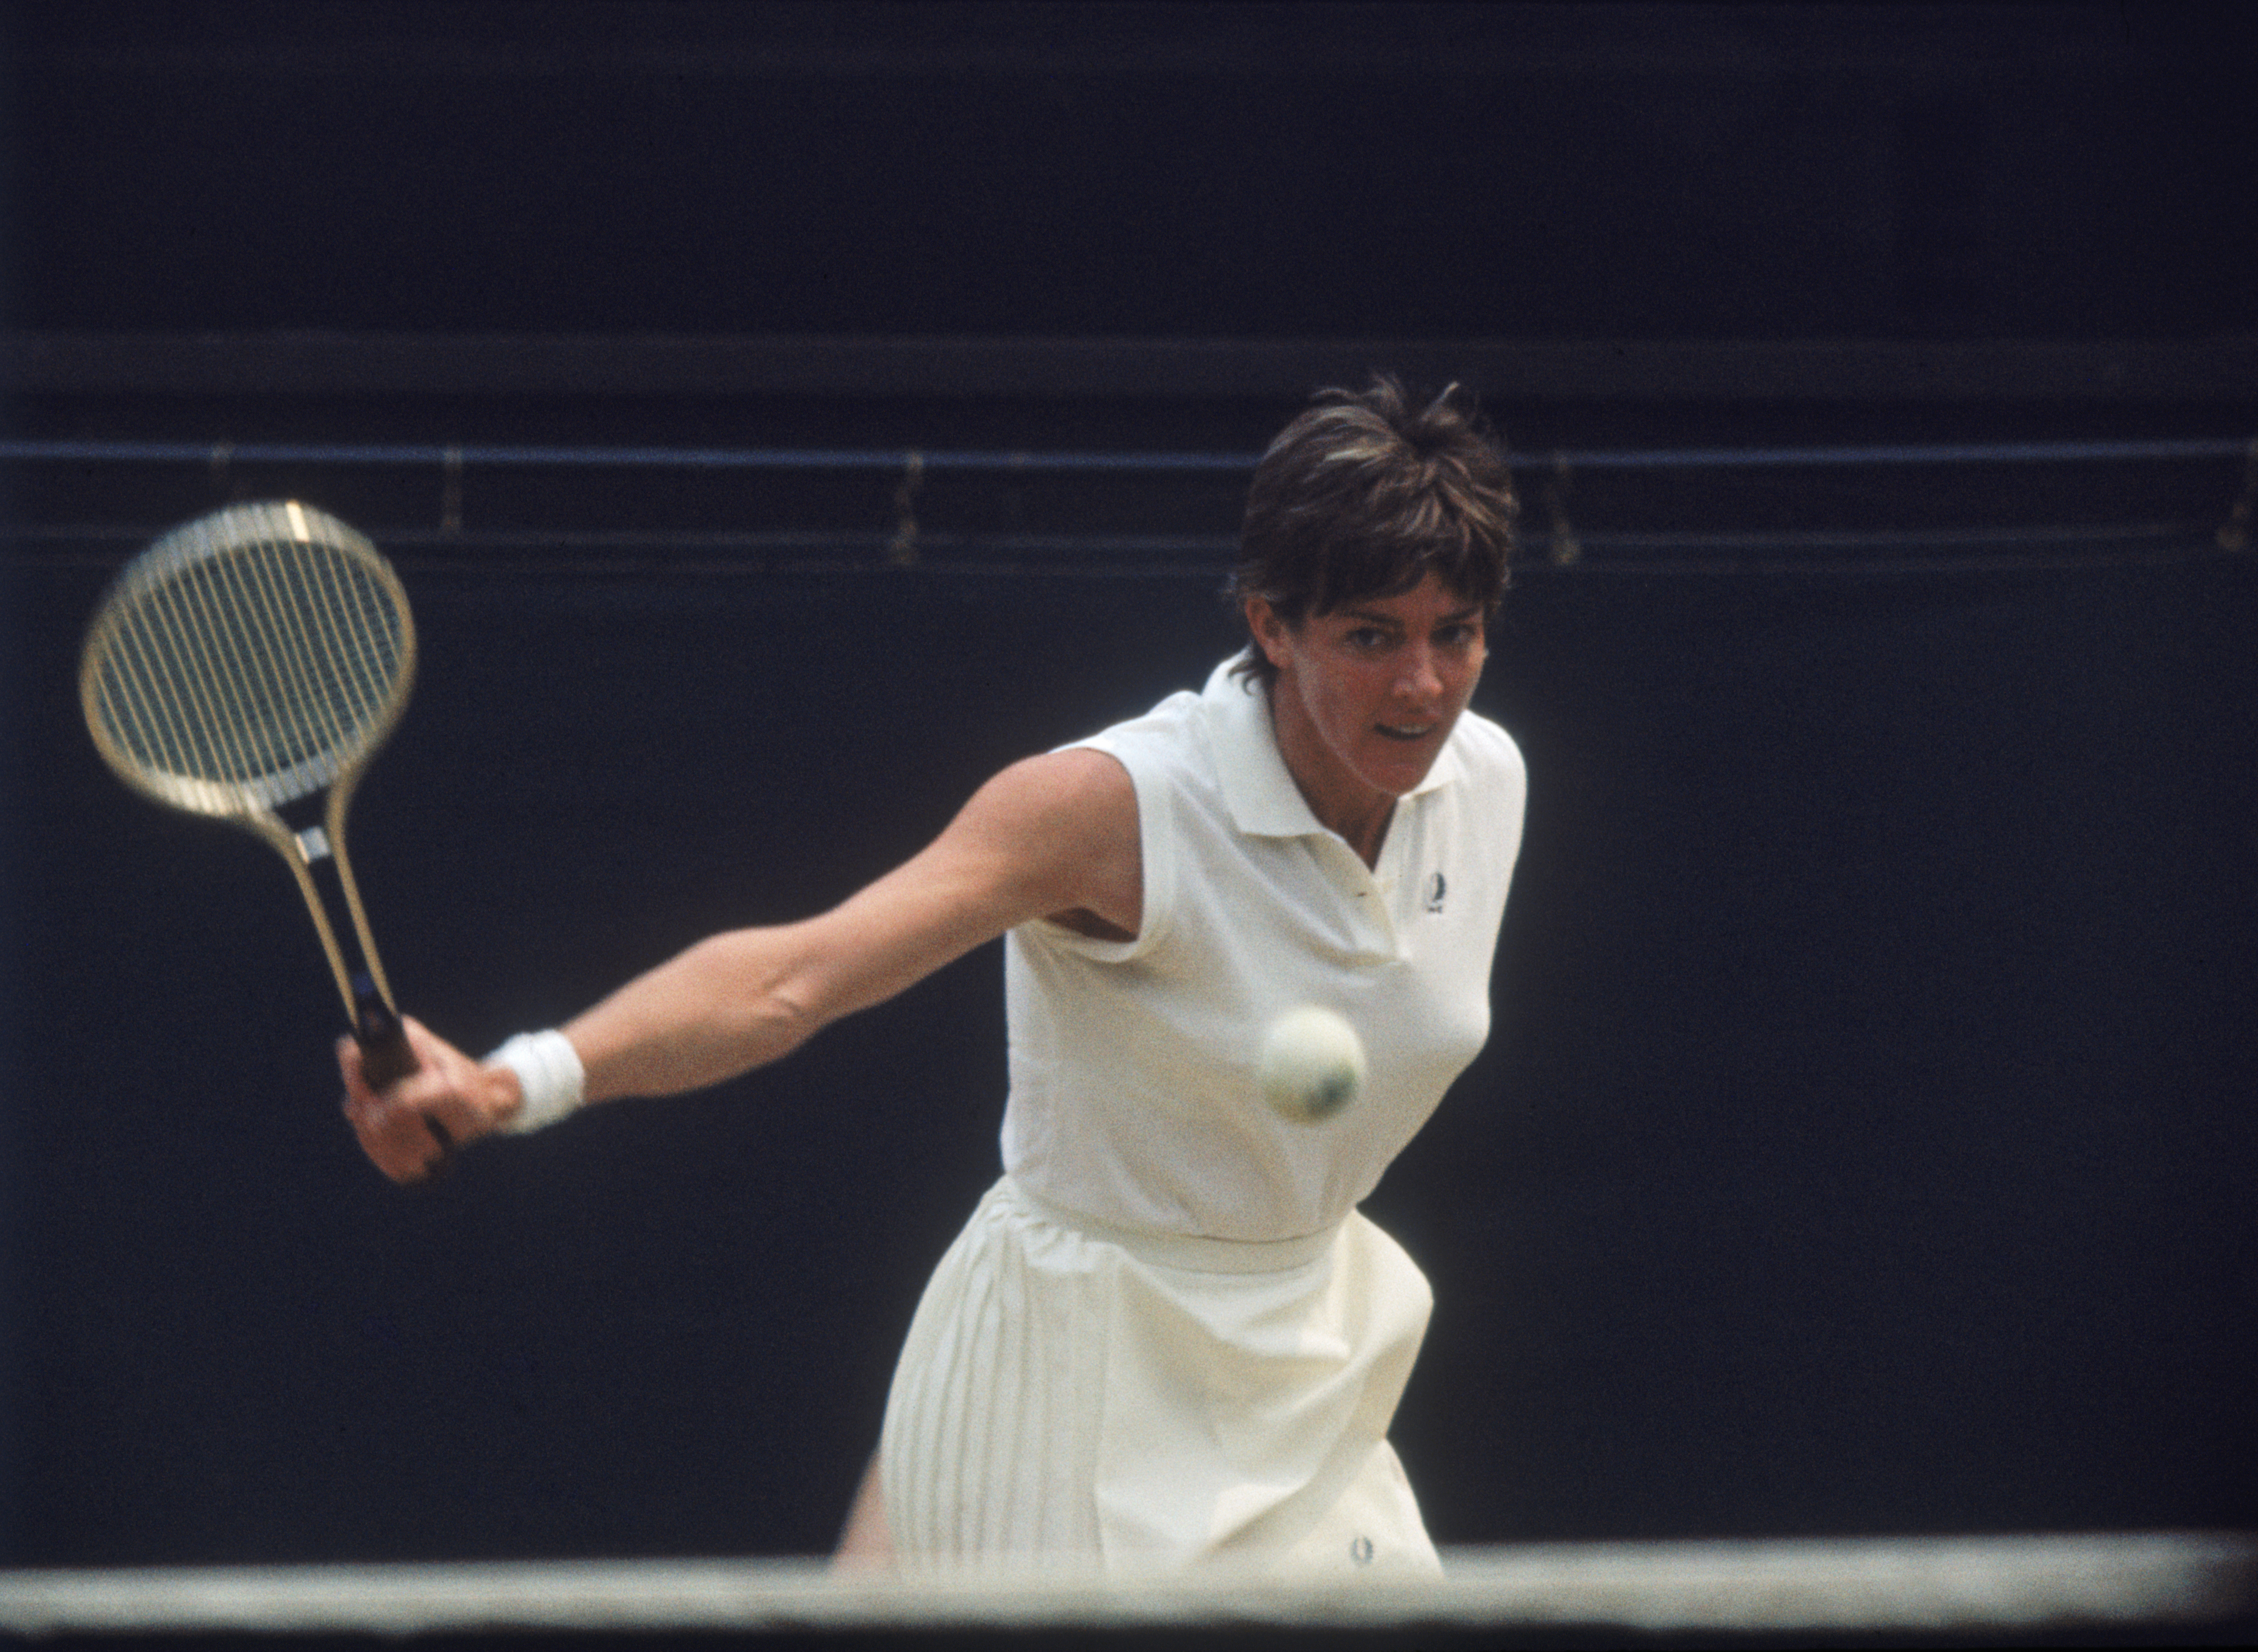 <b>Margaret Court</b> Born to poor parents in New South Wales, Australia, Margaret Court, now 71, grew up with an inferiority complex. Her family didn't have a television or a car, and her first tennis racket was fashioned from the stakes of an old wooden fence. She eventually turned it into gold.